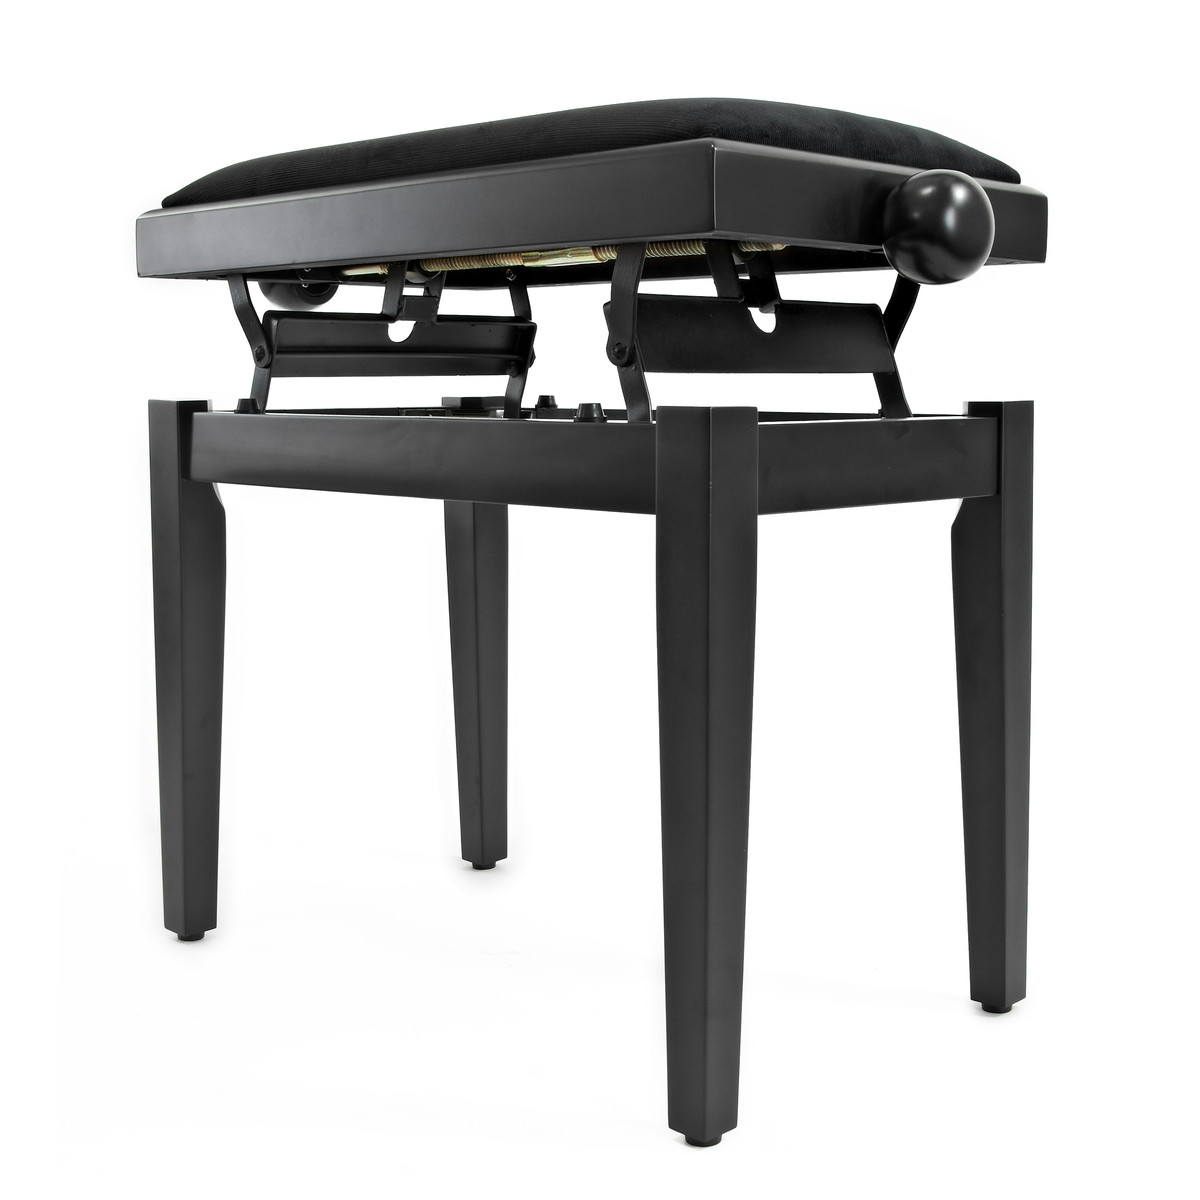 tabouret de piano r glable par gear4music noir mat ex d mo. Black Bedroom Furniture Sets. Home Design Ideas